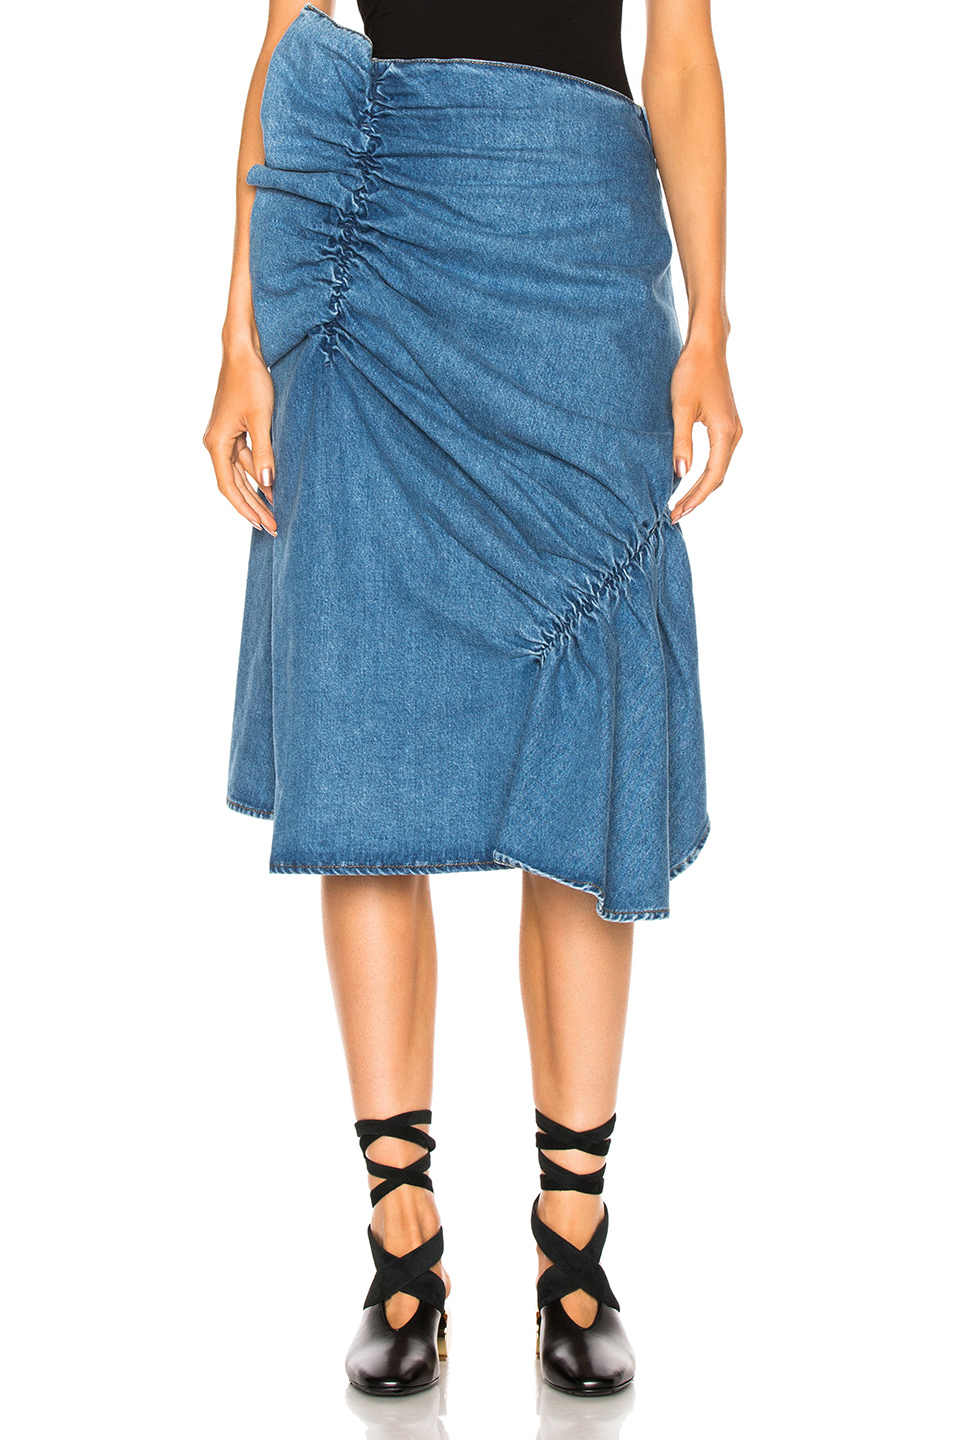 J.W. Anderson Patchwork Gathered Skirt in Blue